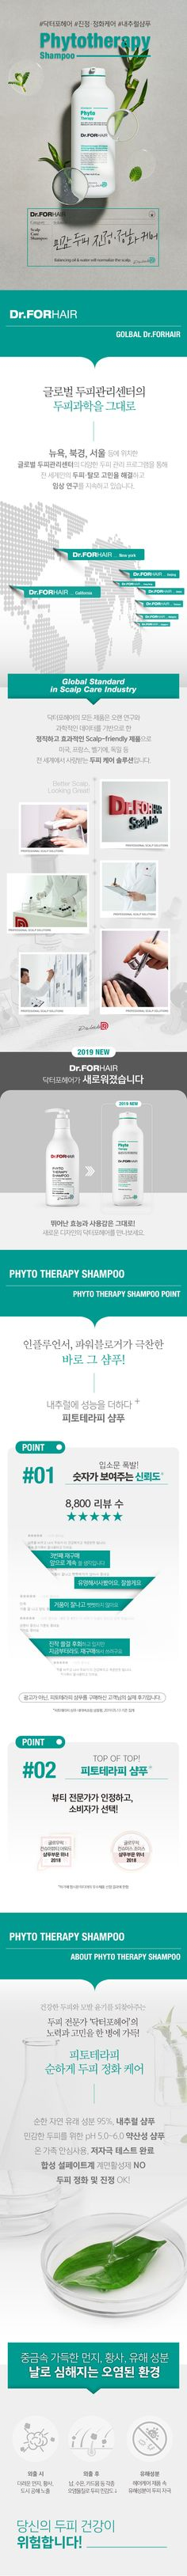 피토 테라피 천연 샴푸 500ml - 닥터포헤어 Web Design, Website Design Layout, Graphic Design Tutorials, Page Design, Layout Design, Cosmetic Web, Promotional Design, Ads Creative, Event Page